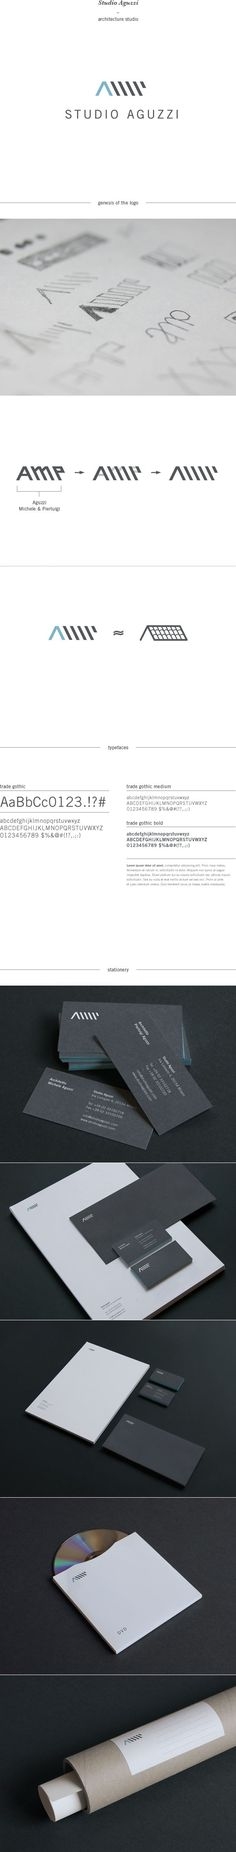 Studio Aguzzi - Architecture Studio by Giorgia Smiraglia, via Behance